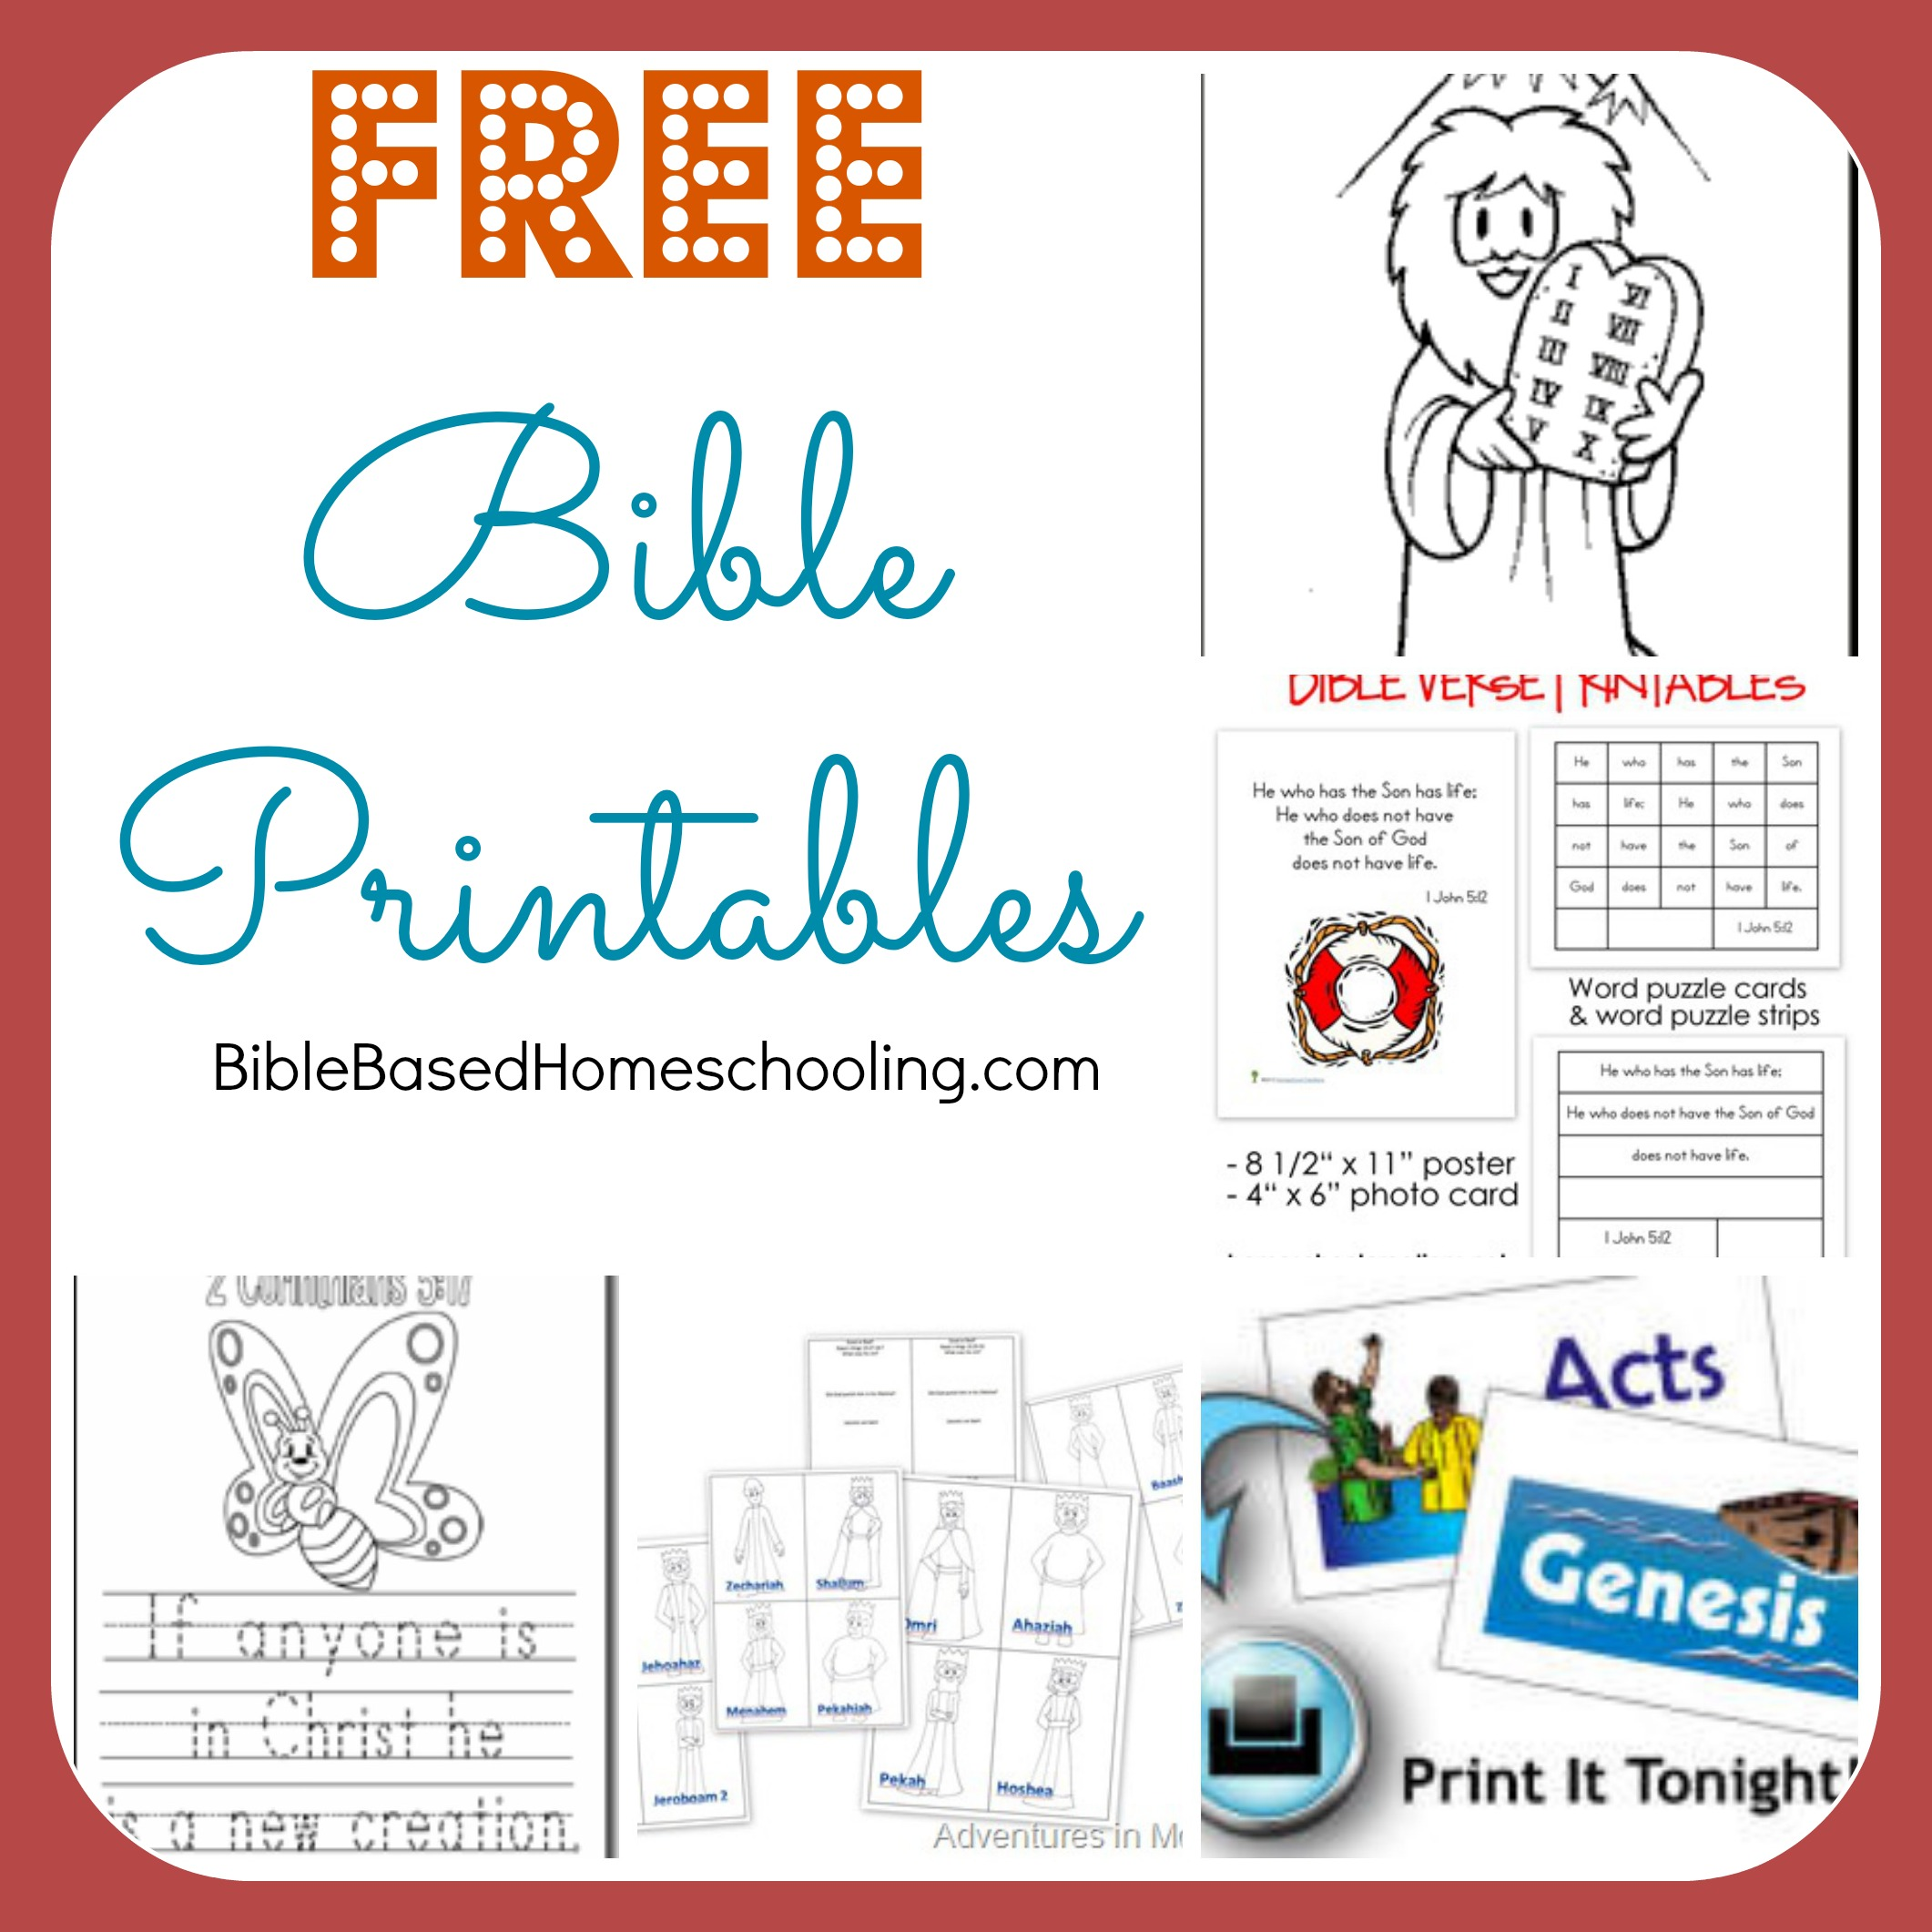 6 Best Images of Printable Youth Bible Worksheets - Free ...